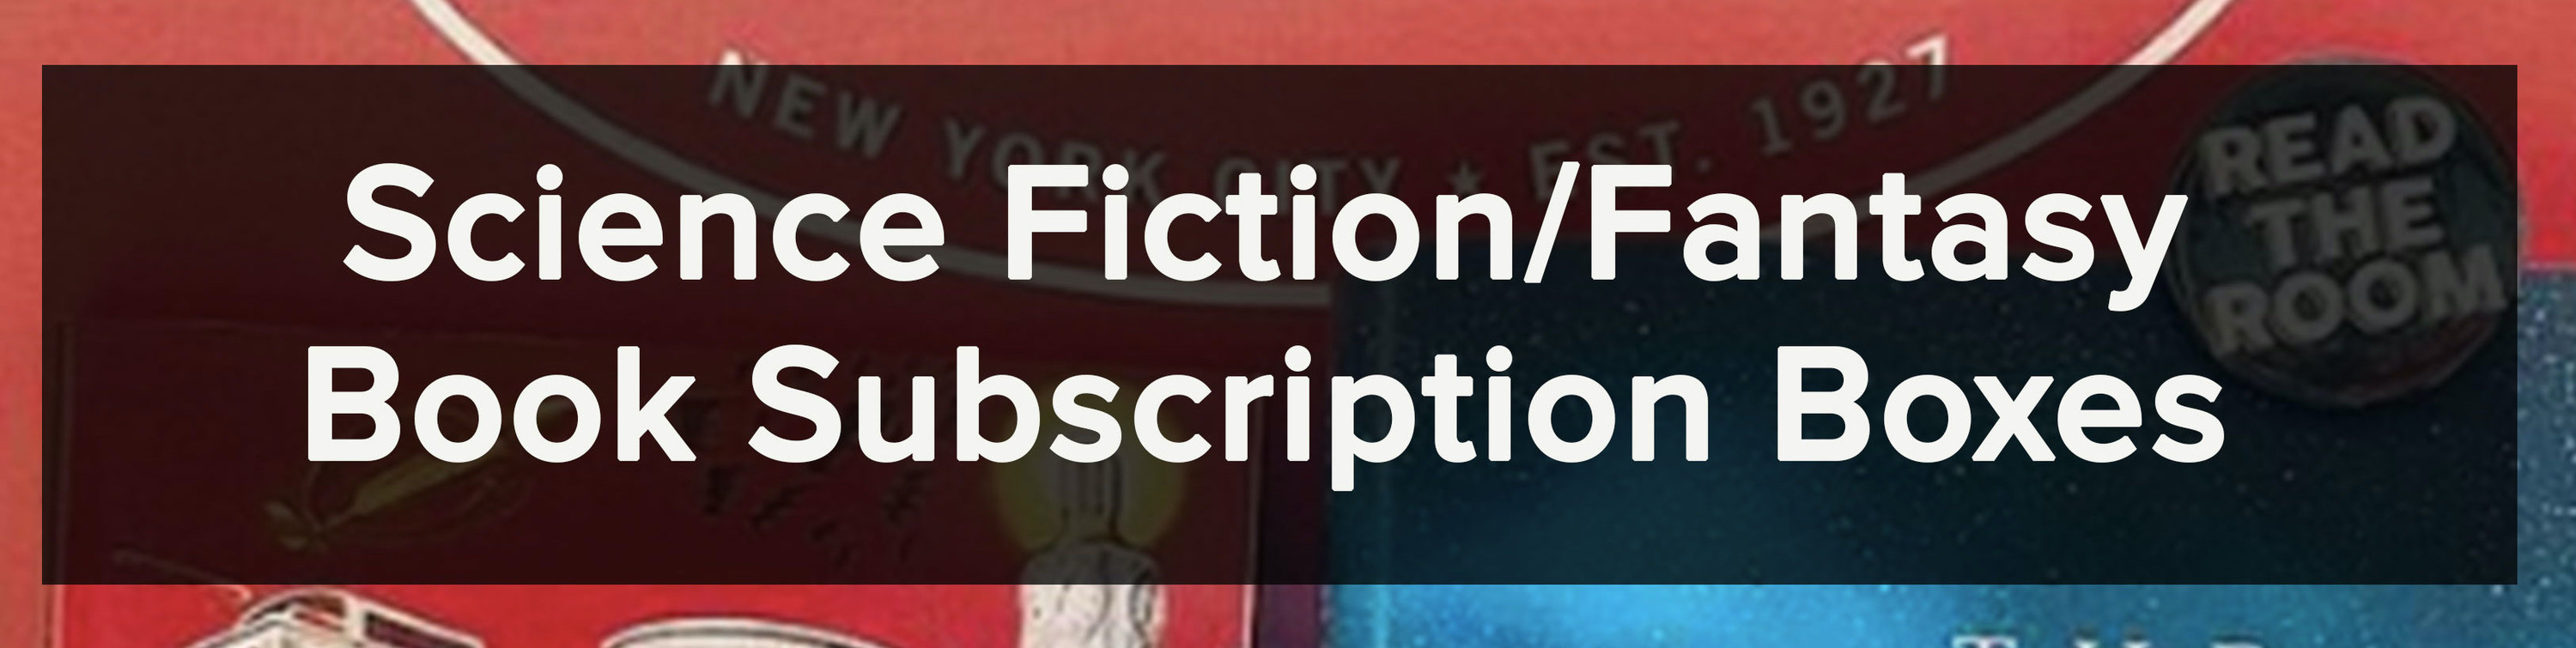 Science Fiction/Fantasy Book Subscription Boxes